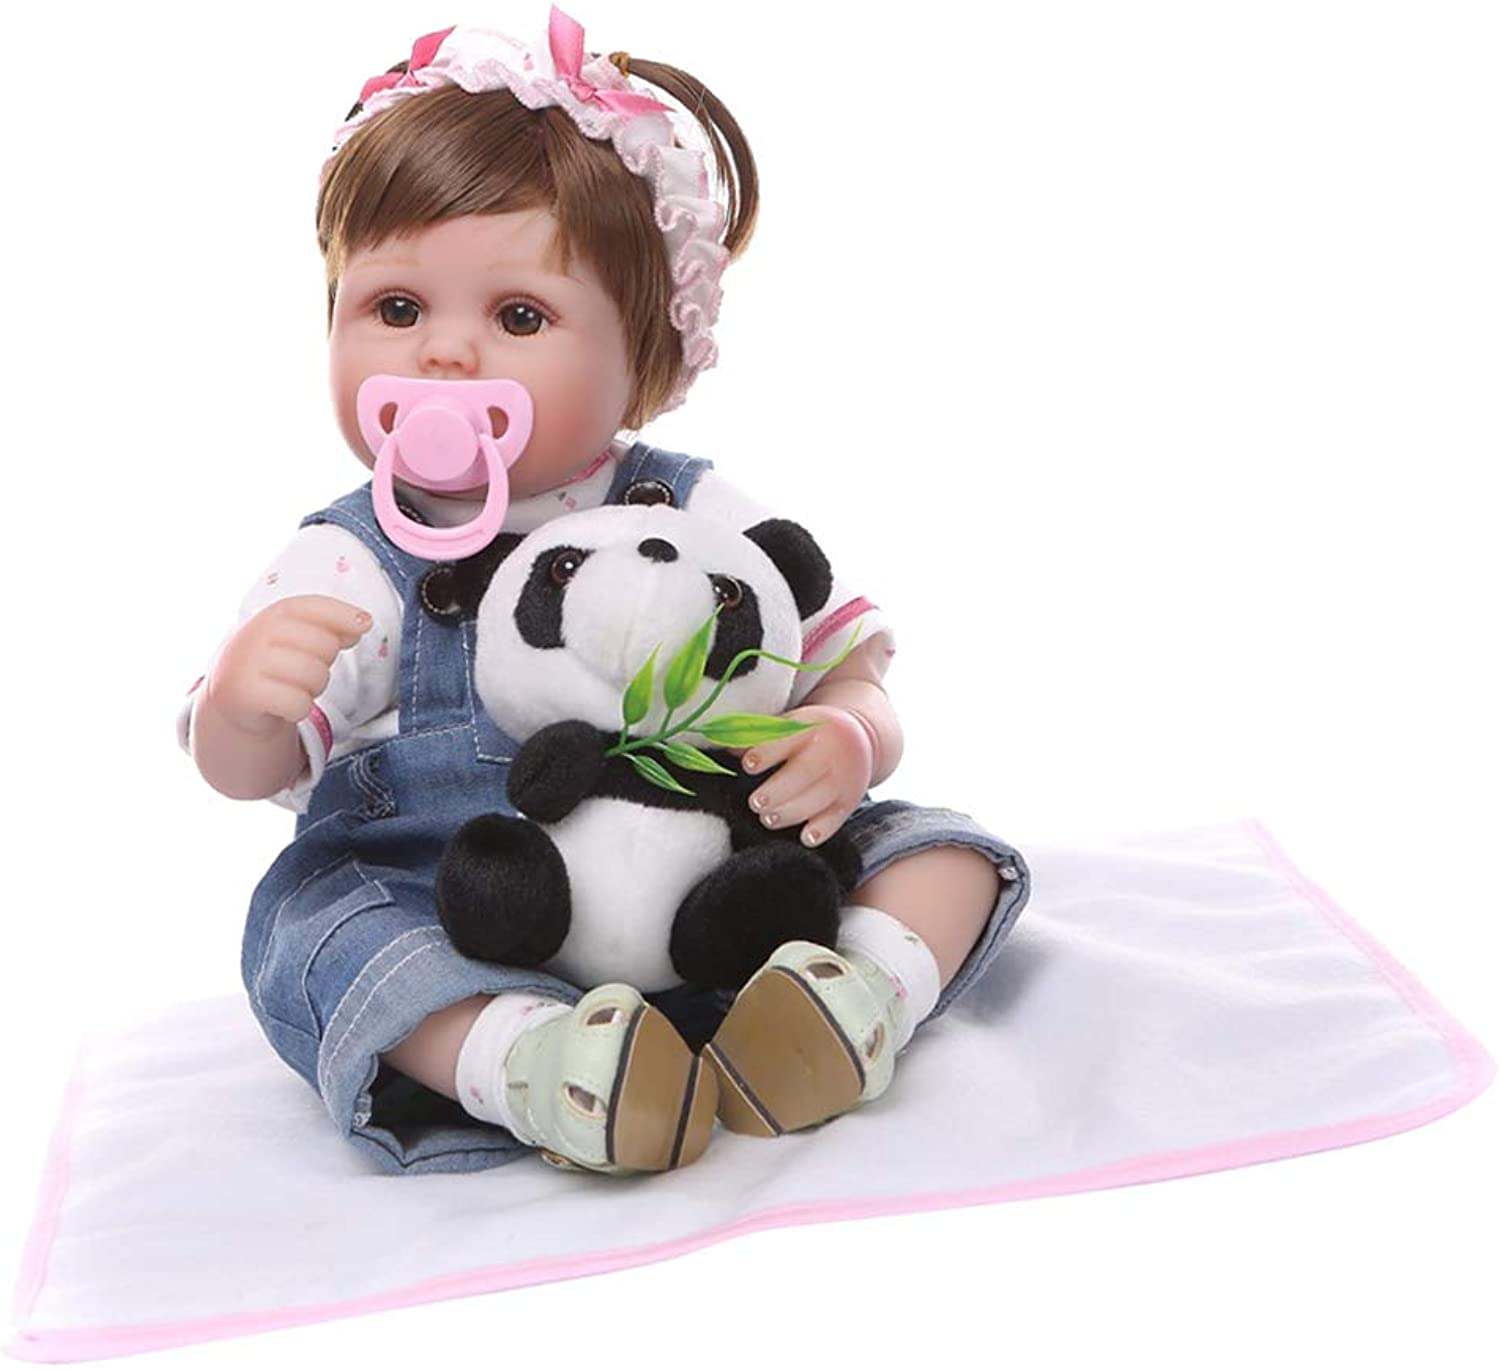 FITYLE Real Touch 17inch Reborn Doll Newborn Baby Doll with Clothes, Nursing Bottle, Magnetic Pacifier, Carpet and Mini Plush Toy